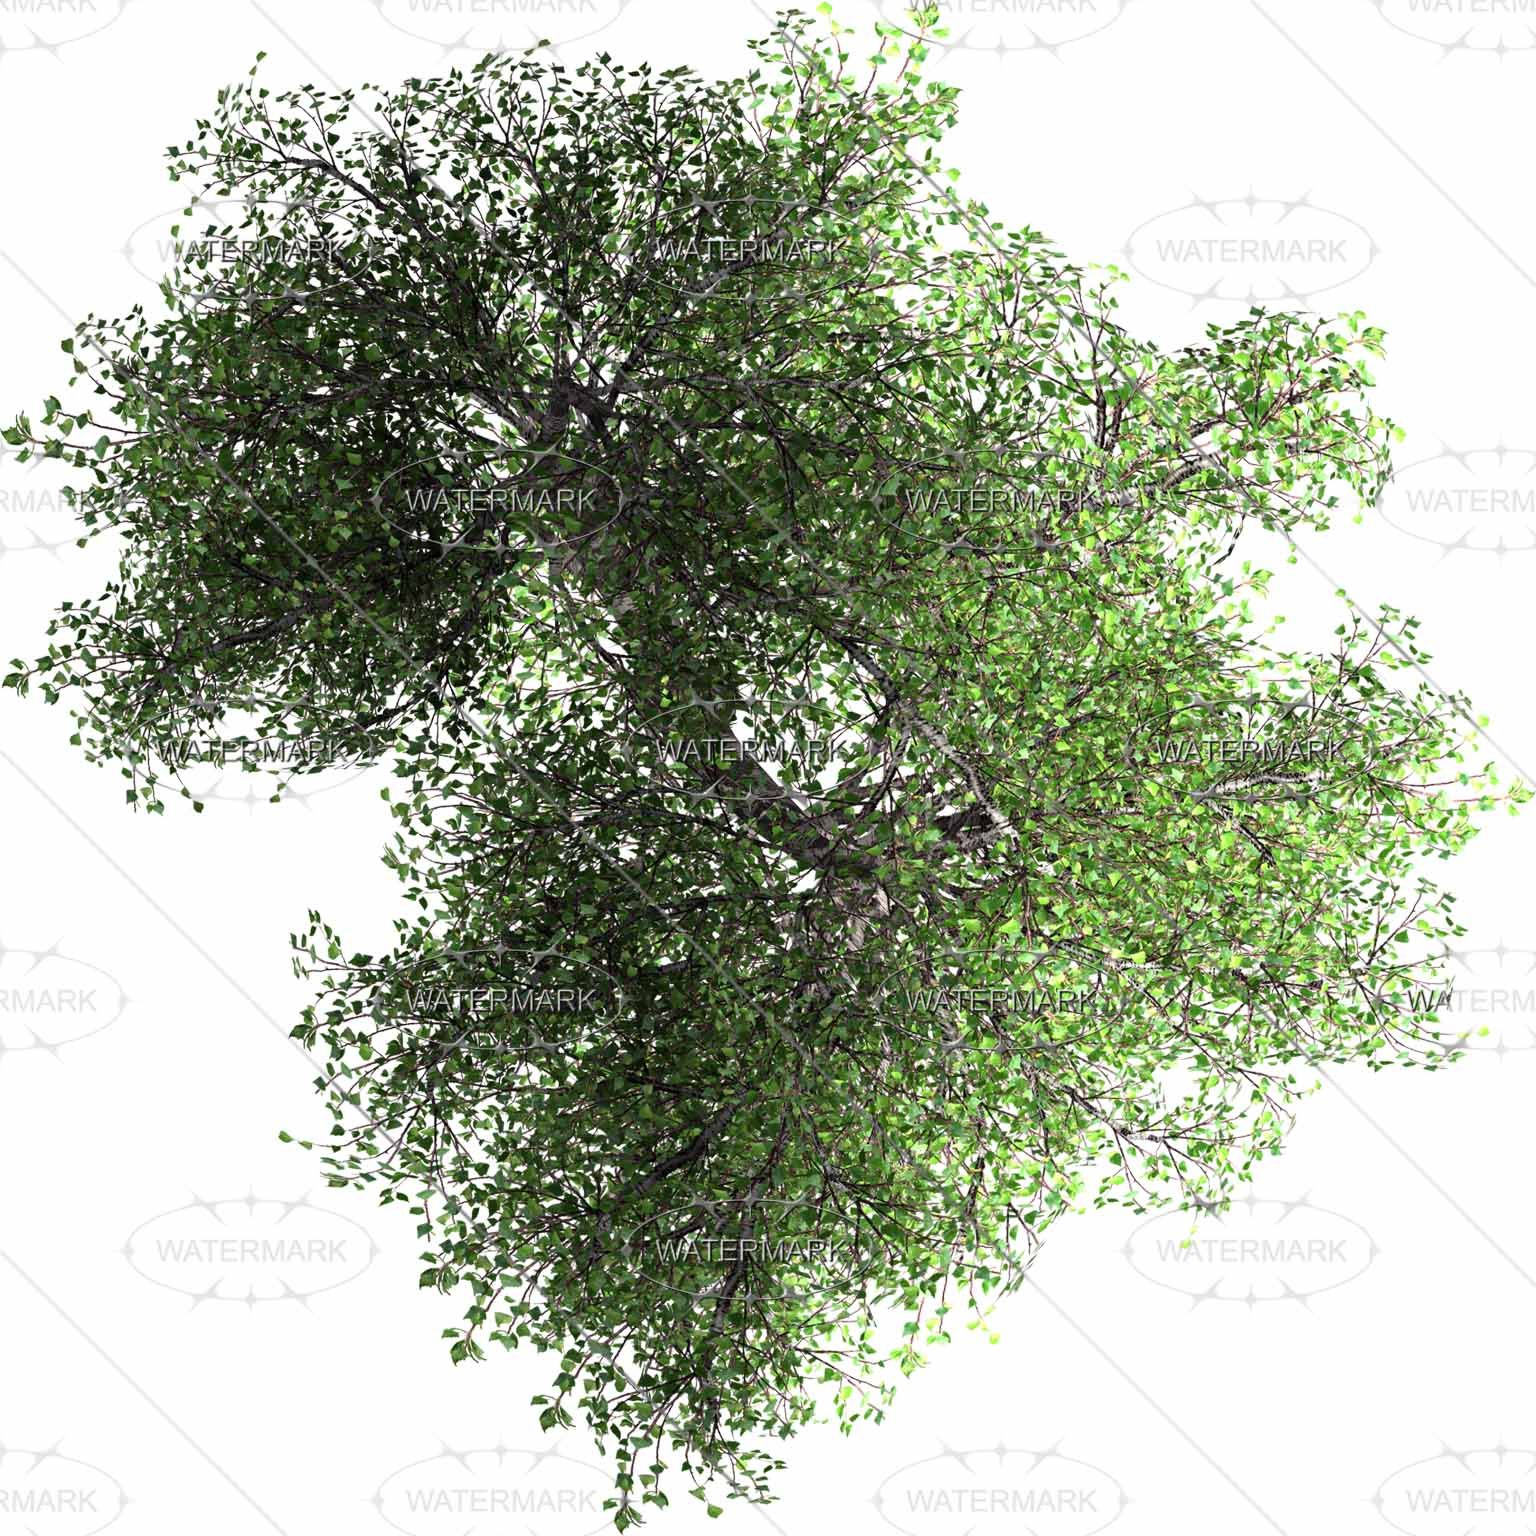 Pics For Gt Tree Top View Png Tree Photoshop Trees Top View